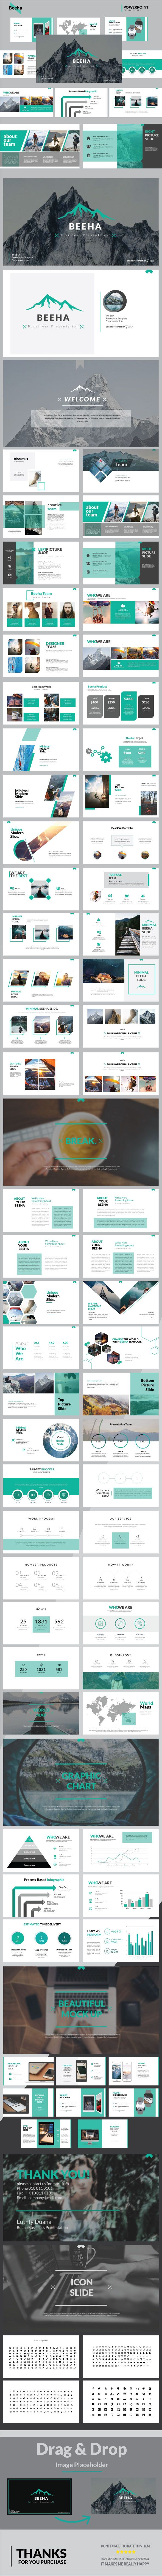 Beeha Multipurpose Presentation Templates - #Business #PowerPoint #Templates Download here: https://graphicriver.net/item/beeha-multipurpose-presentation-templates/19503878?ref=alena994